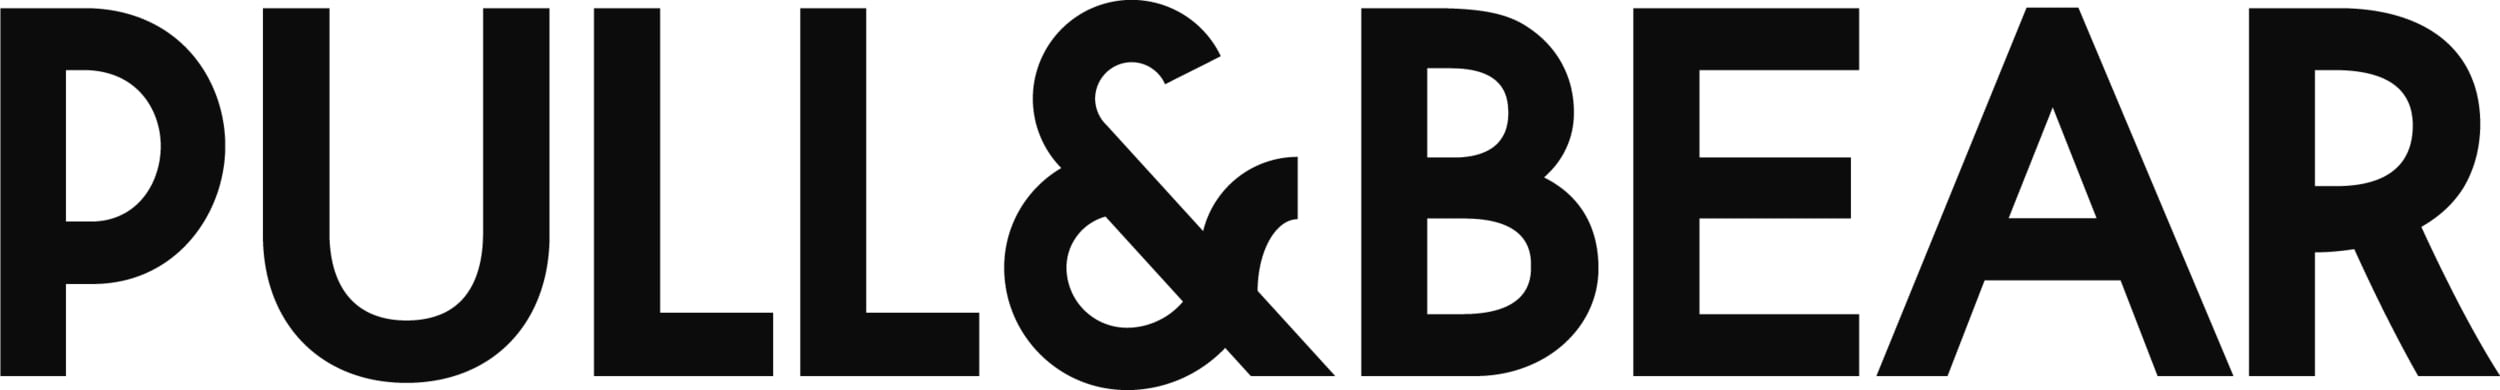 Actual_logo_pull_and_bear.jpg